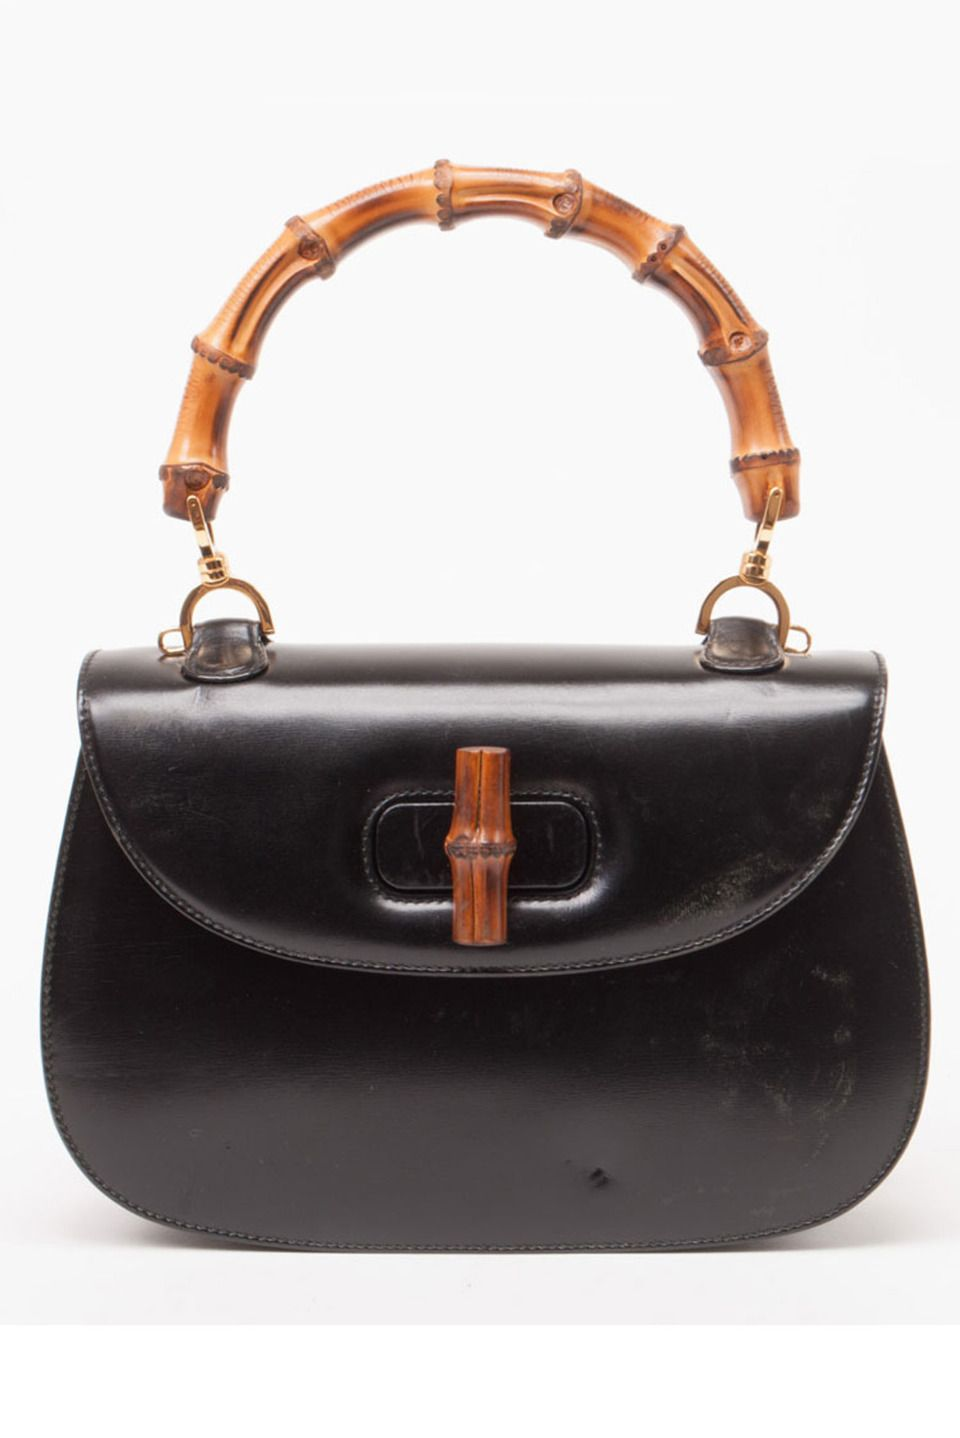 f40e05aac Gucci Kelly Bag With A Compact Mirror In Black - Beyond the Rack ...